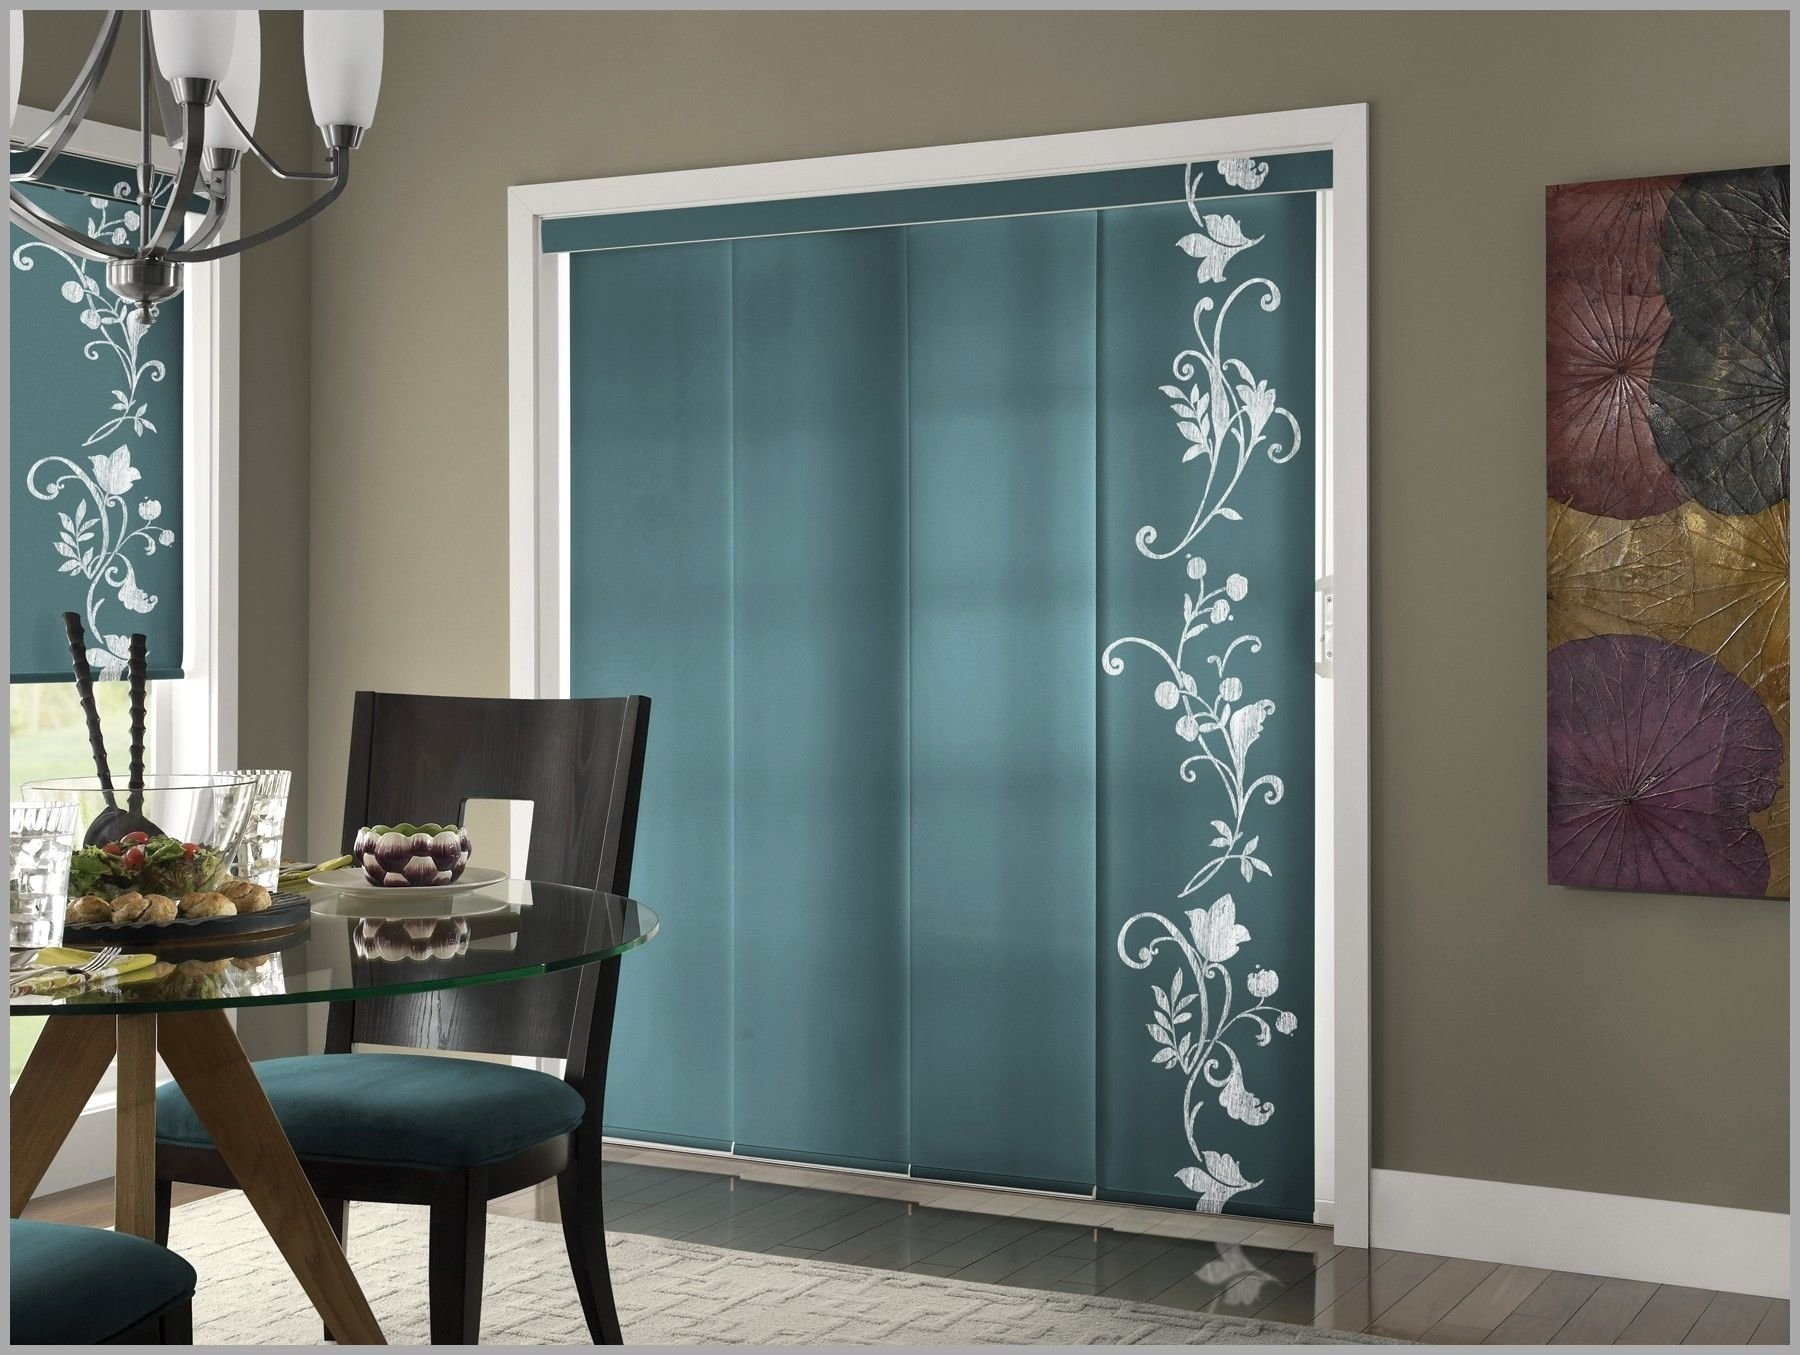 10 Amazing Sliding Glass Door Curtain Ideas the best sliding glass door curtain ideas popular of patio picture 2020